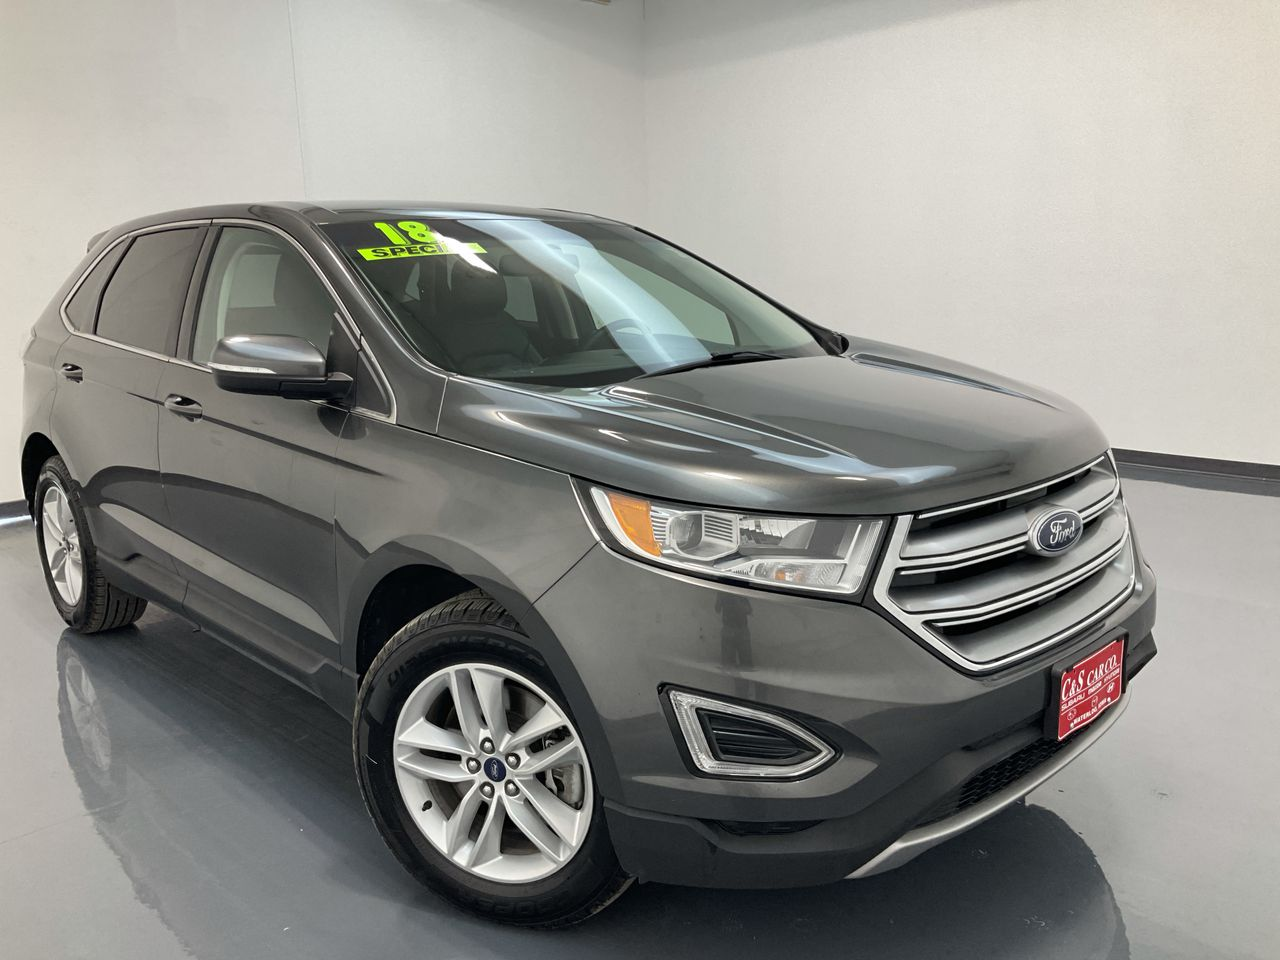 2018 Ford Edge 4D SUV AWD  - 16502  - C & S Car Company